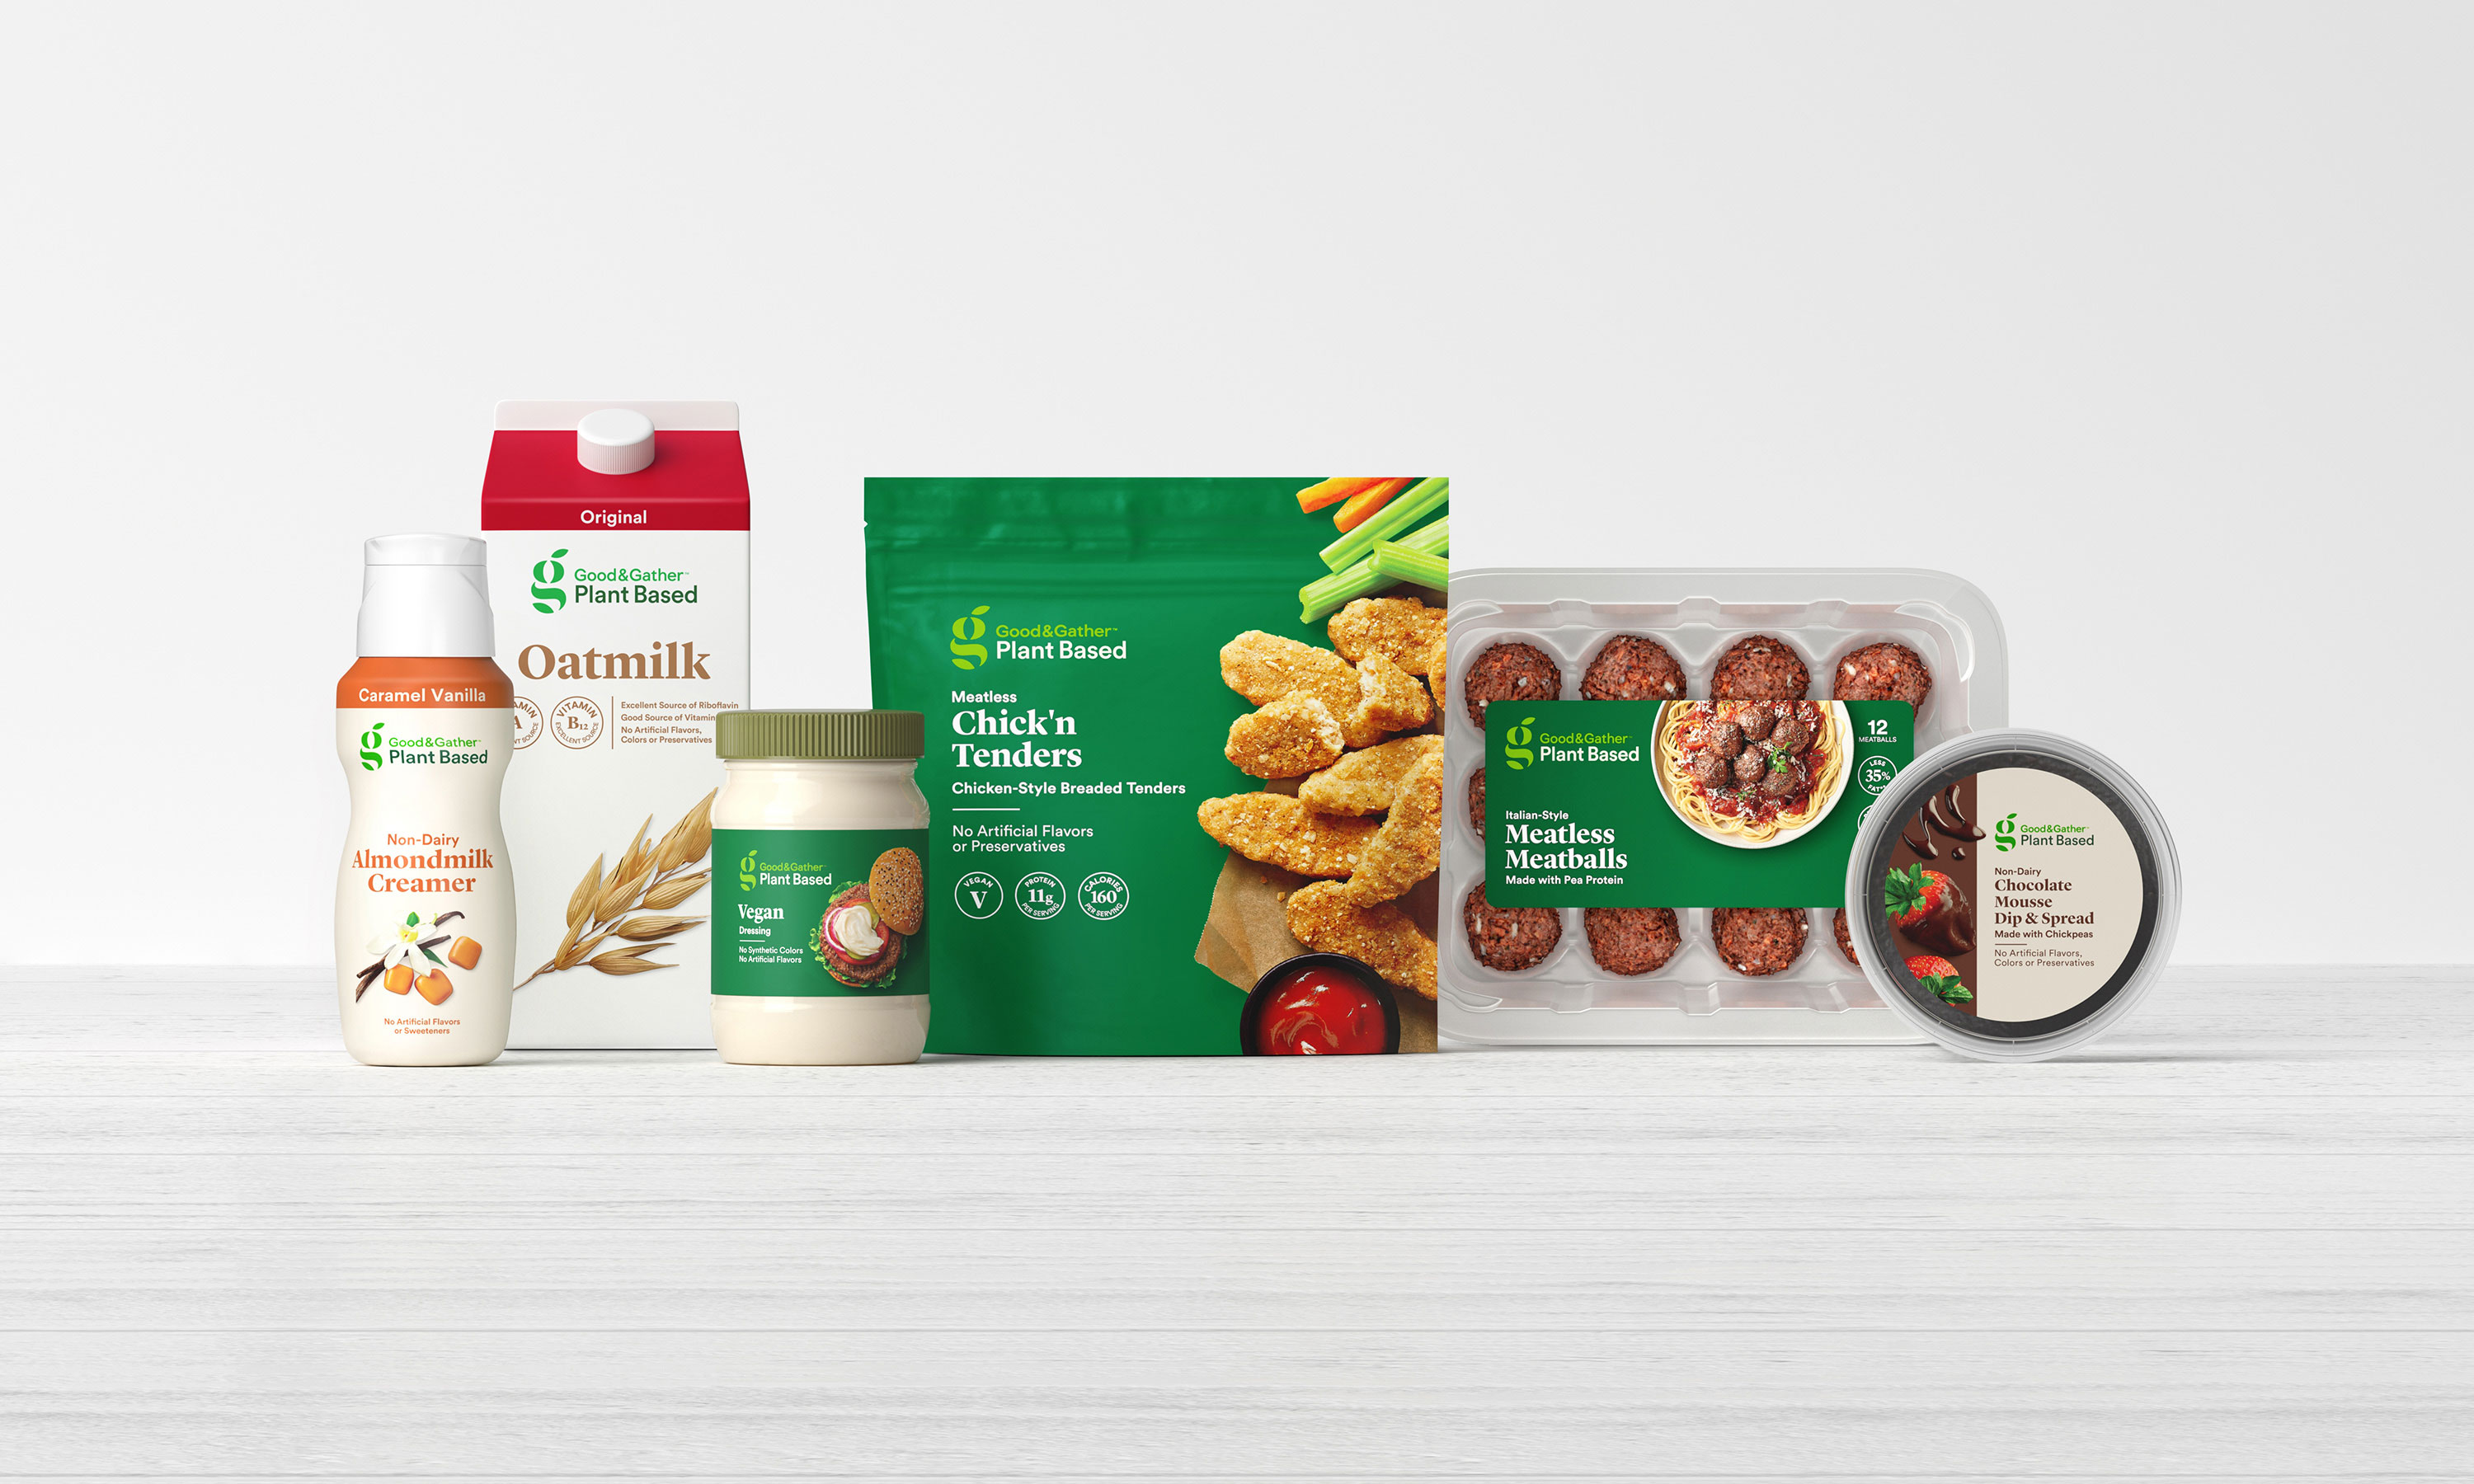 Target is launching a line of plant-based food